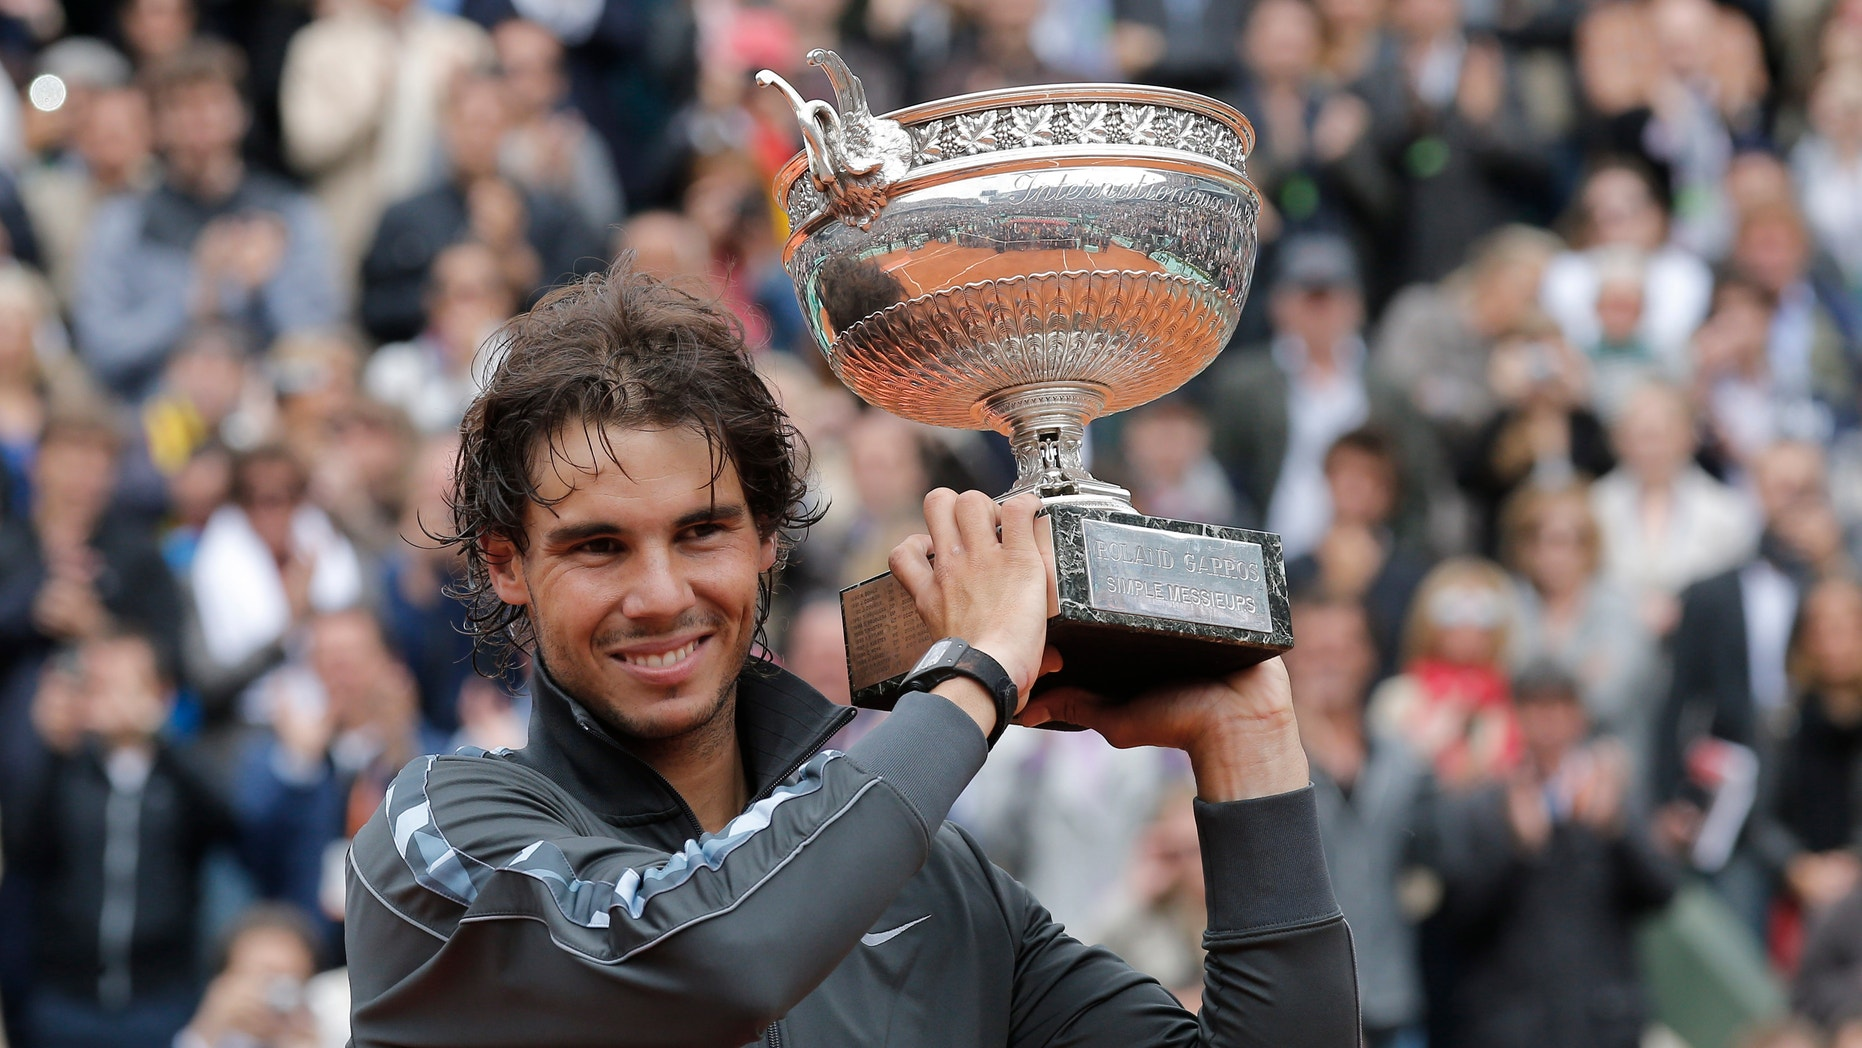 Rafael Nadal, here with his French Open trophy, will carry his country's flag at the Olympics opening ceremony on July 27. (AP Photo)